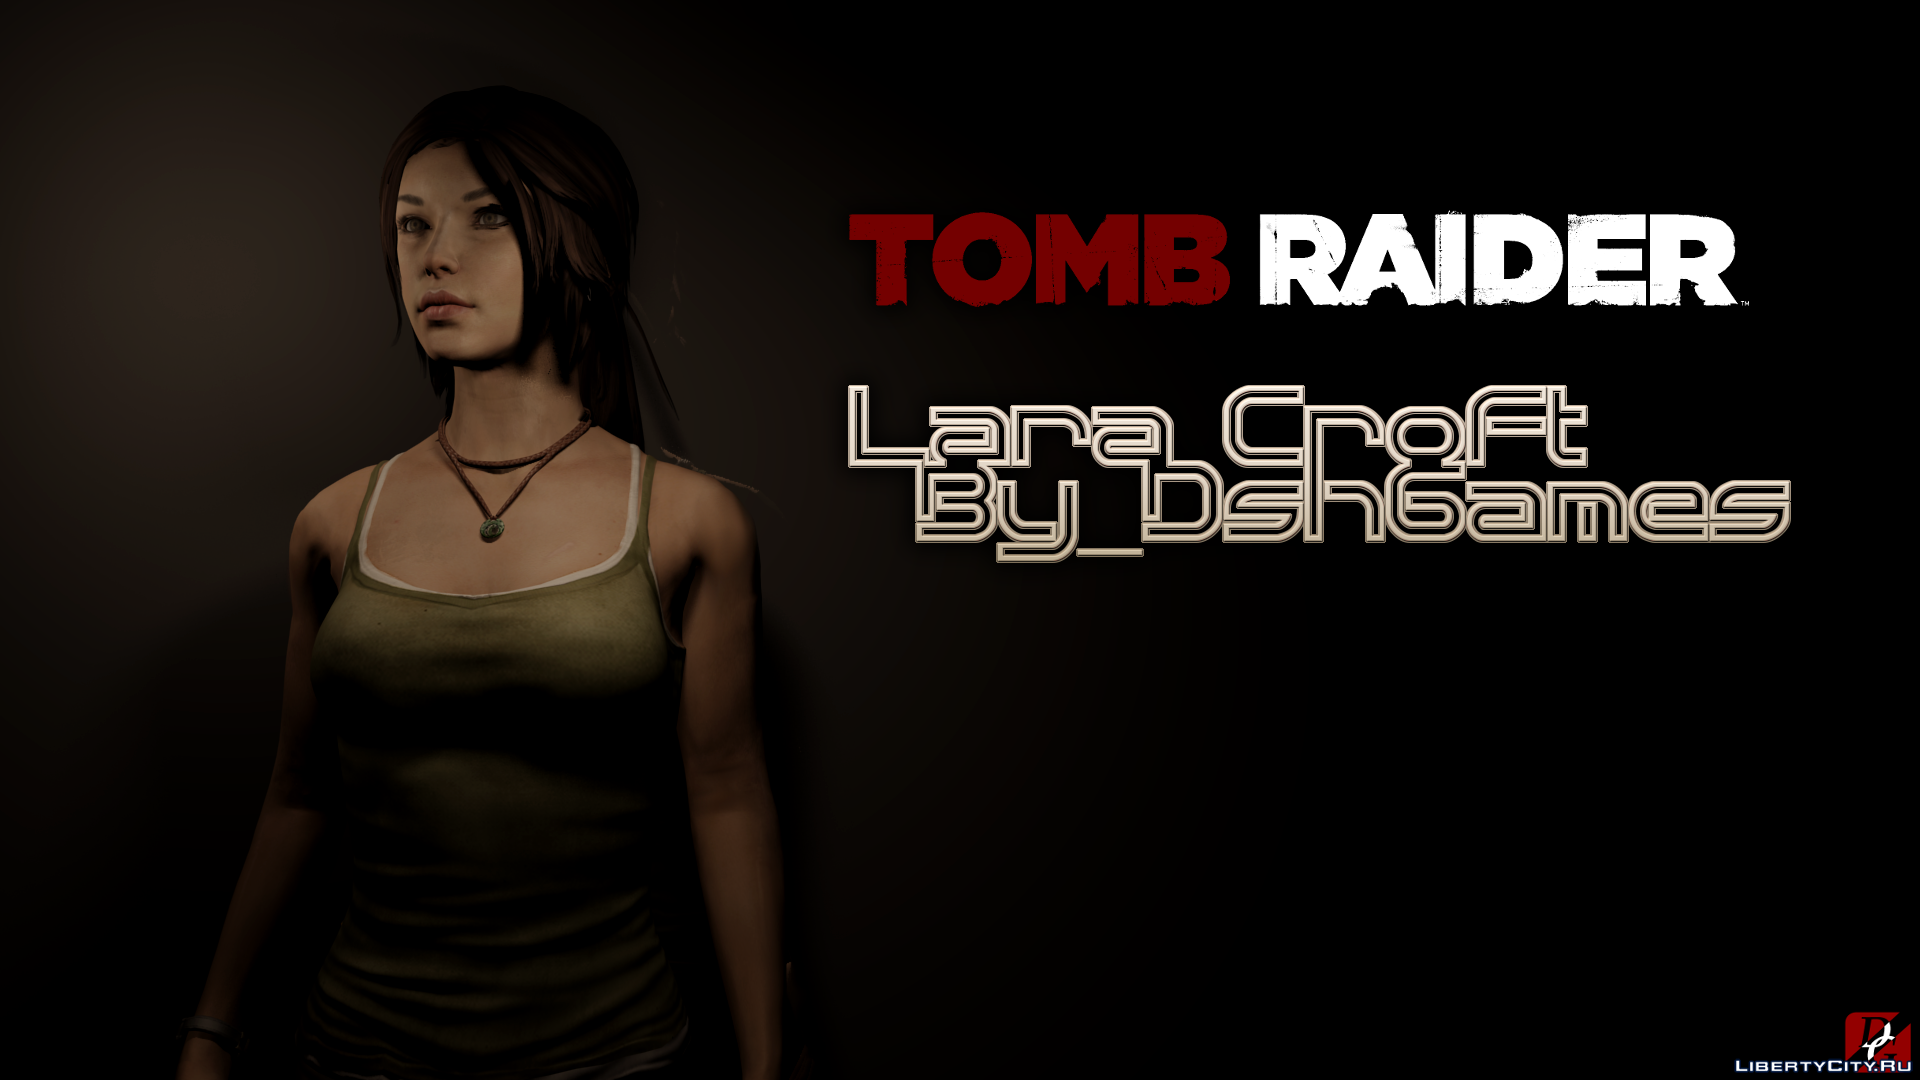 TOMB RAIDER: Lara Croft 0